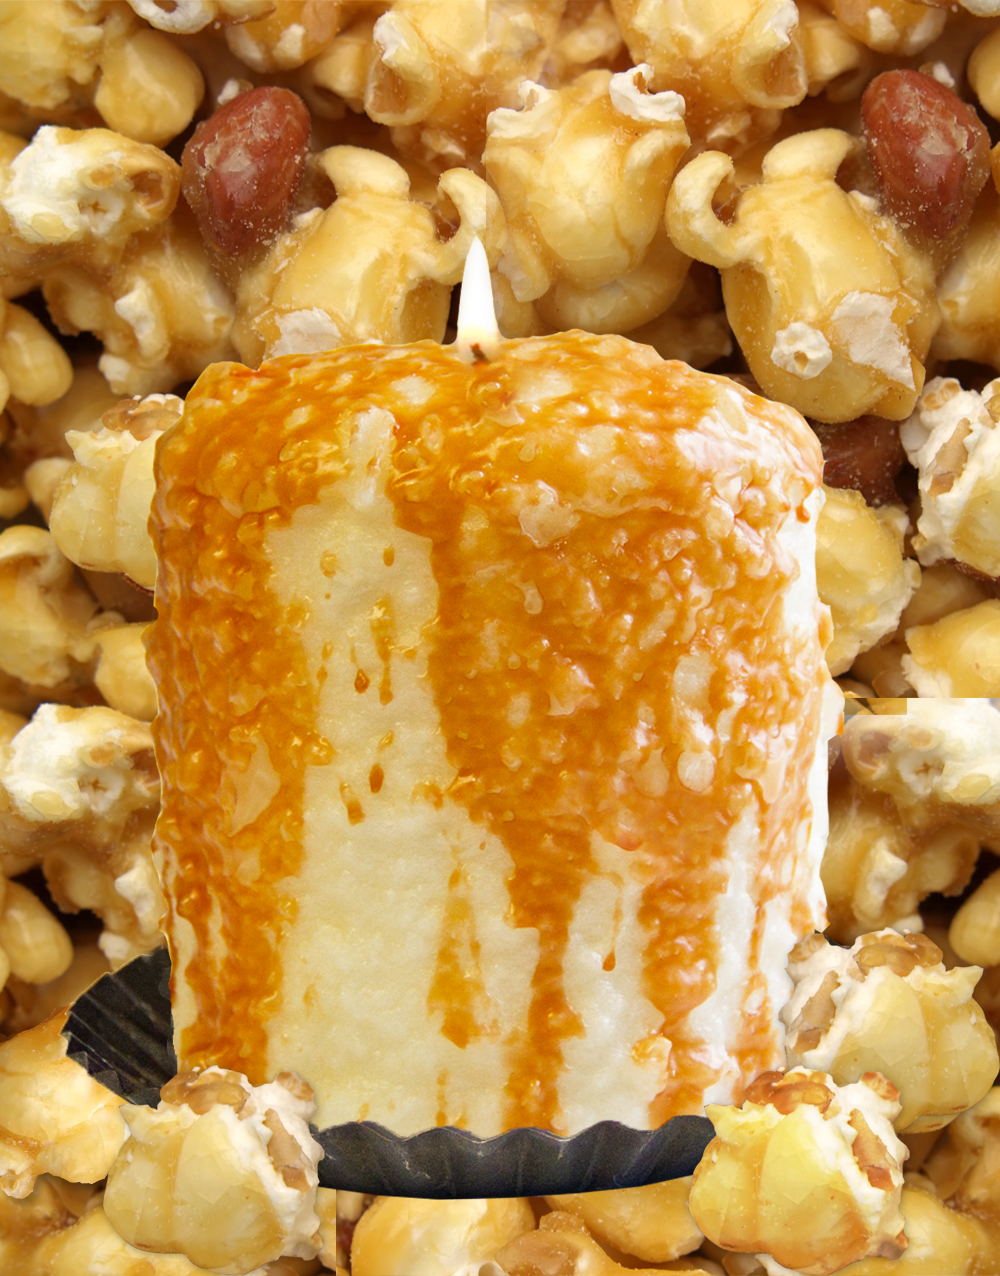 Caramel Corn Hearth Candle